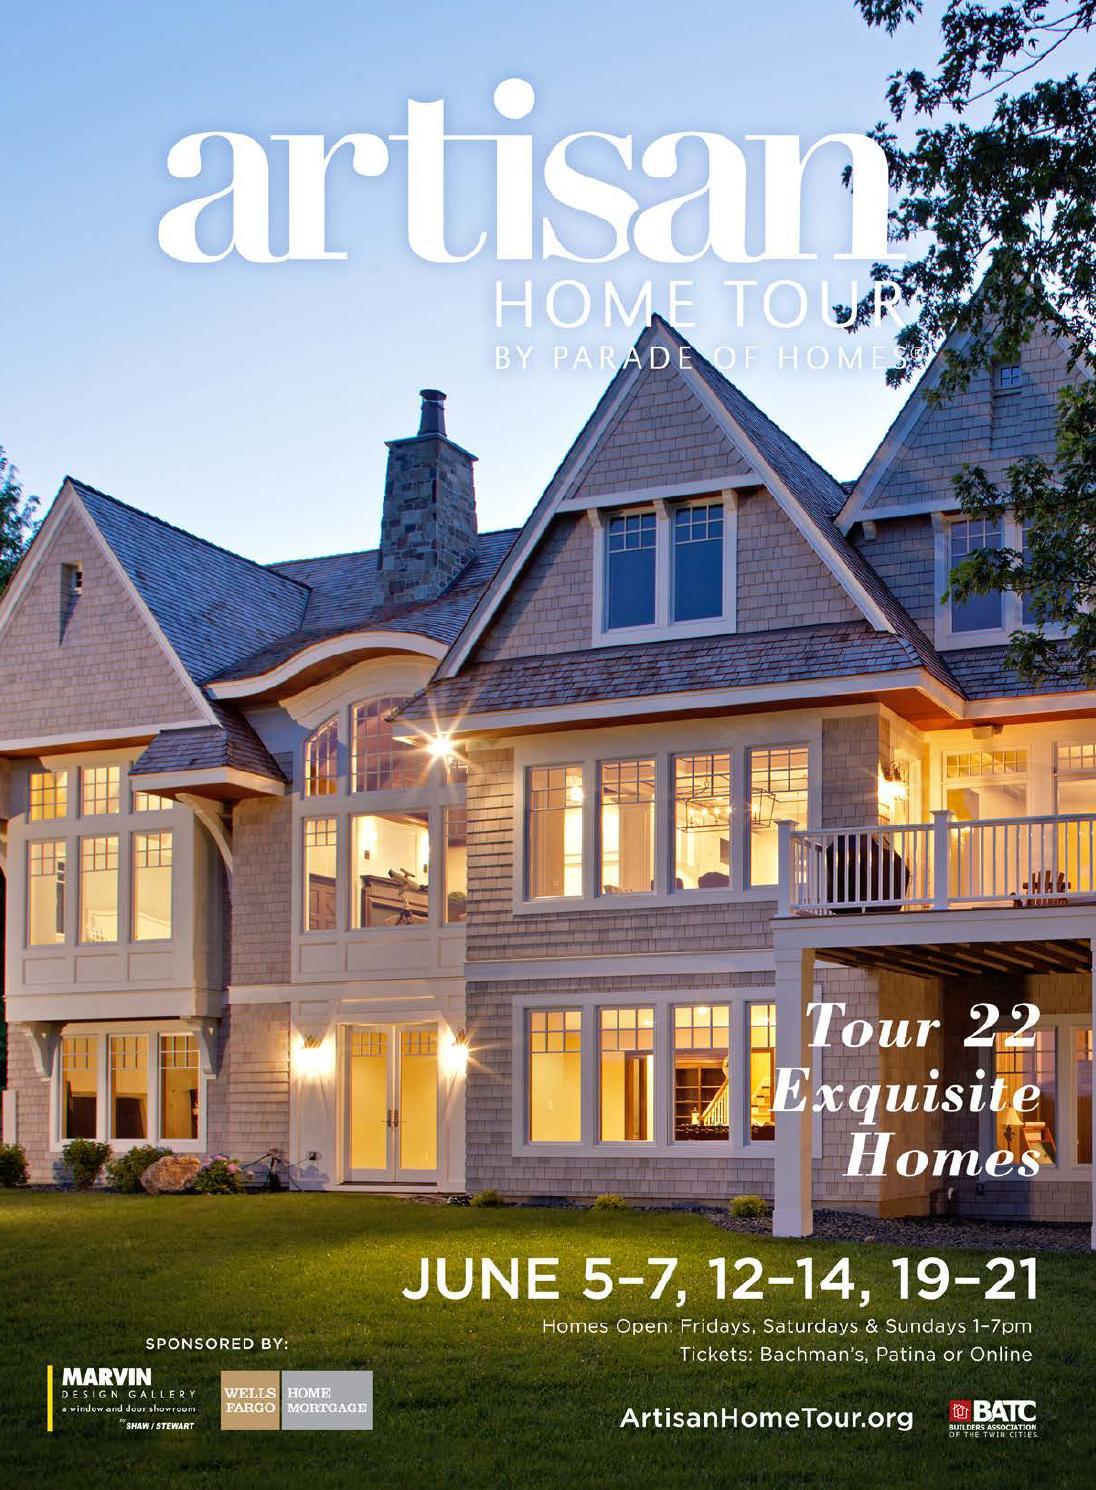 artisan home tour by parade of homes 2015 guide book by batc issuu